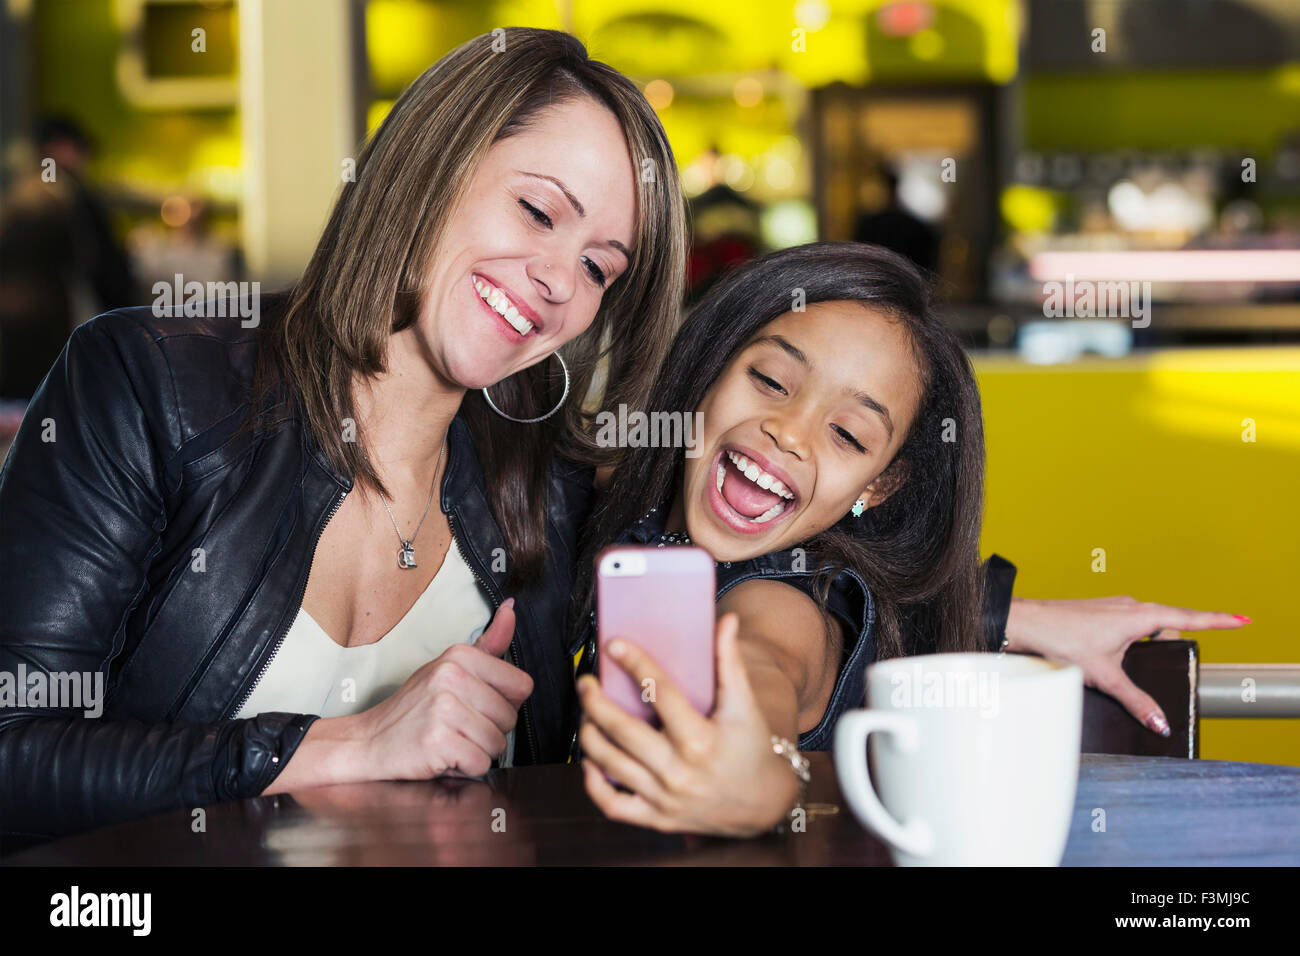 Girl,Canada,Mother,Daughter,Mall,selfie Stock Photo